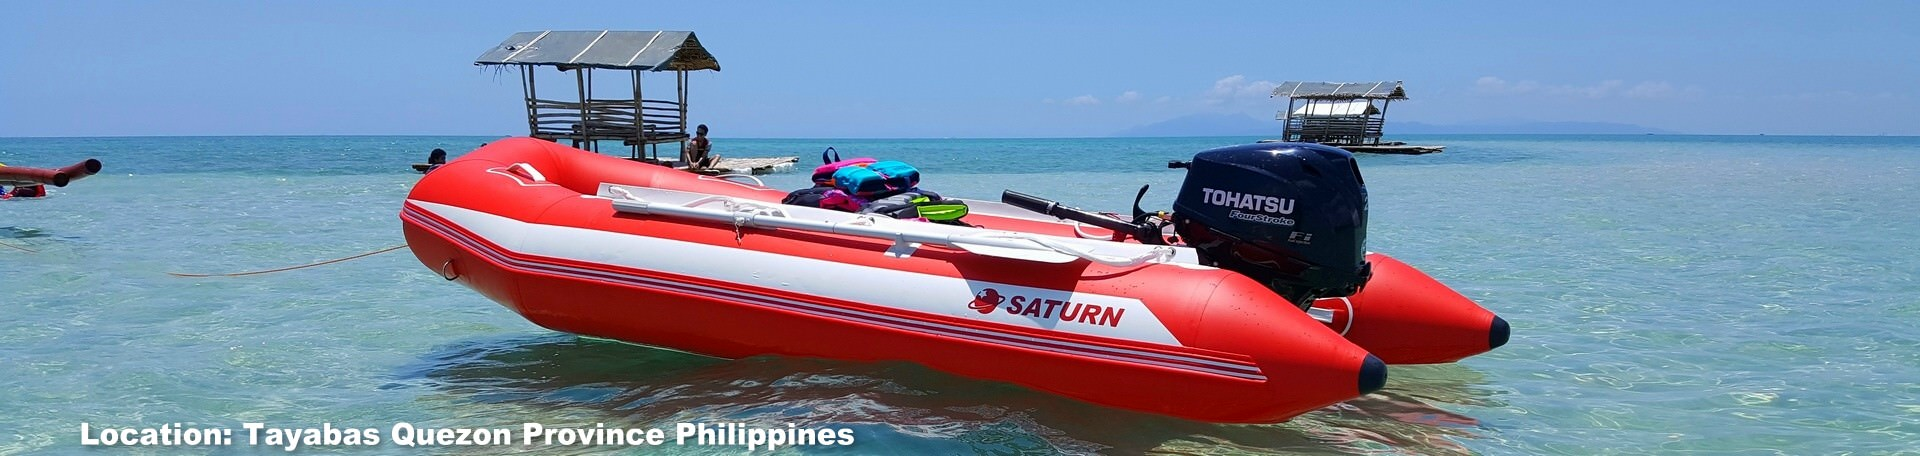 Customer's Picture of Saturn SD380 Inflatable Boat.